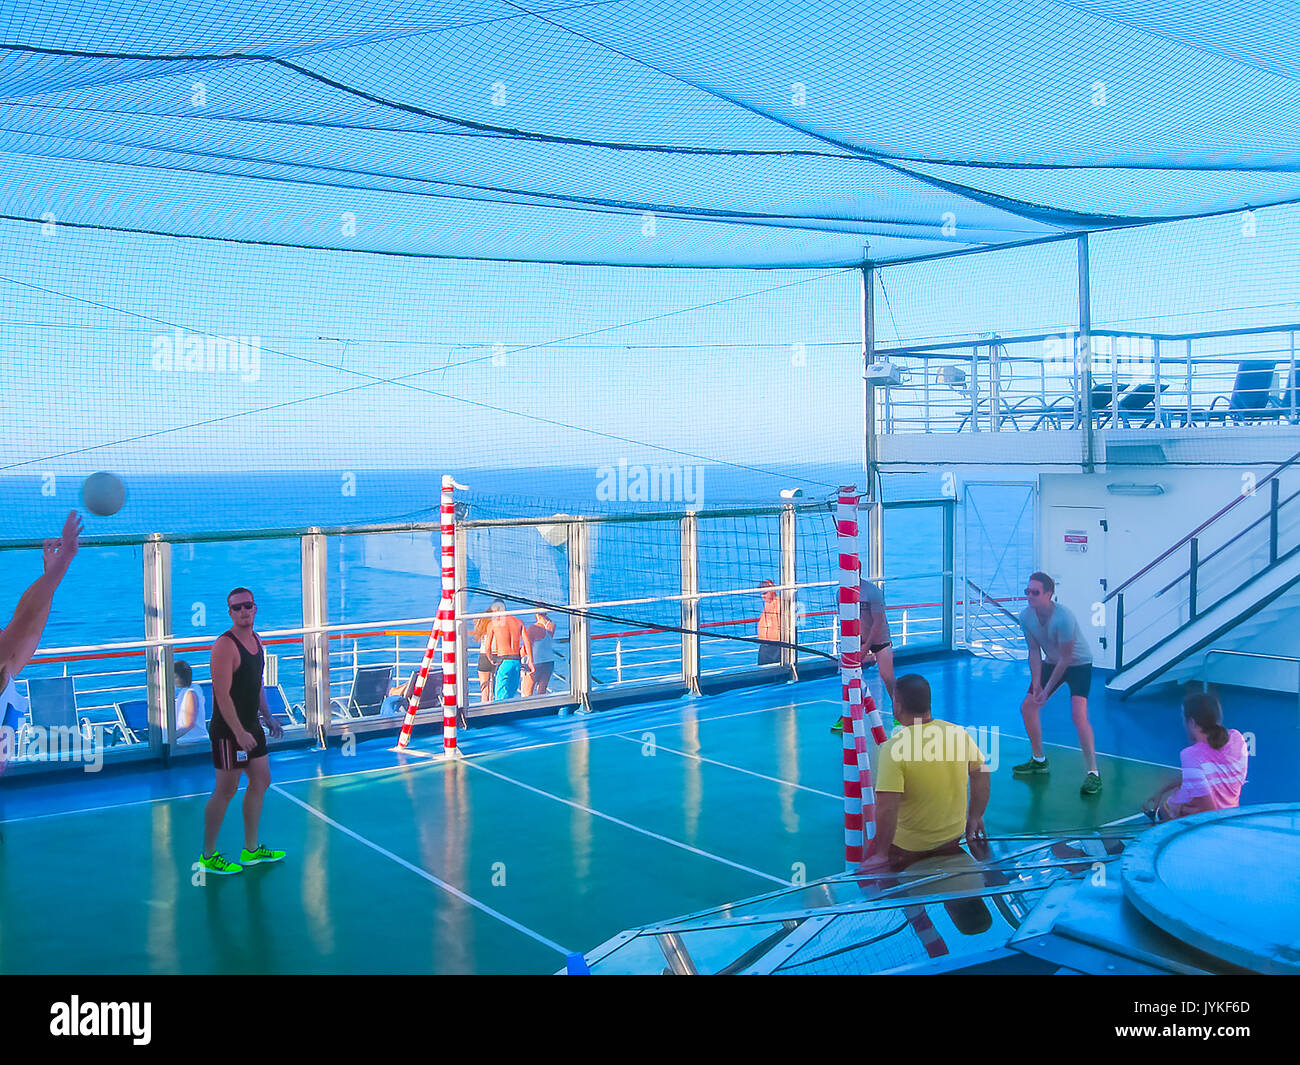 Carnival Dream Cruise Stock Photos Amp Carnival Dream Cruise Stock Images Alamy